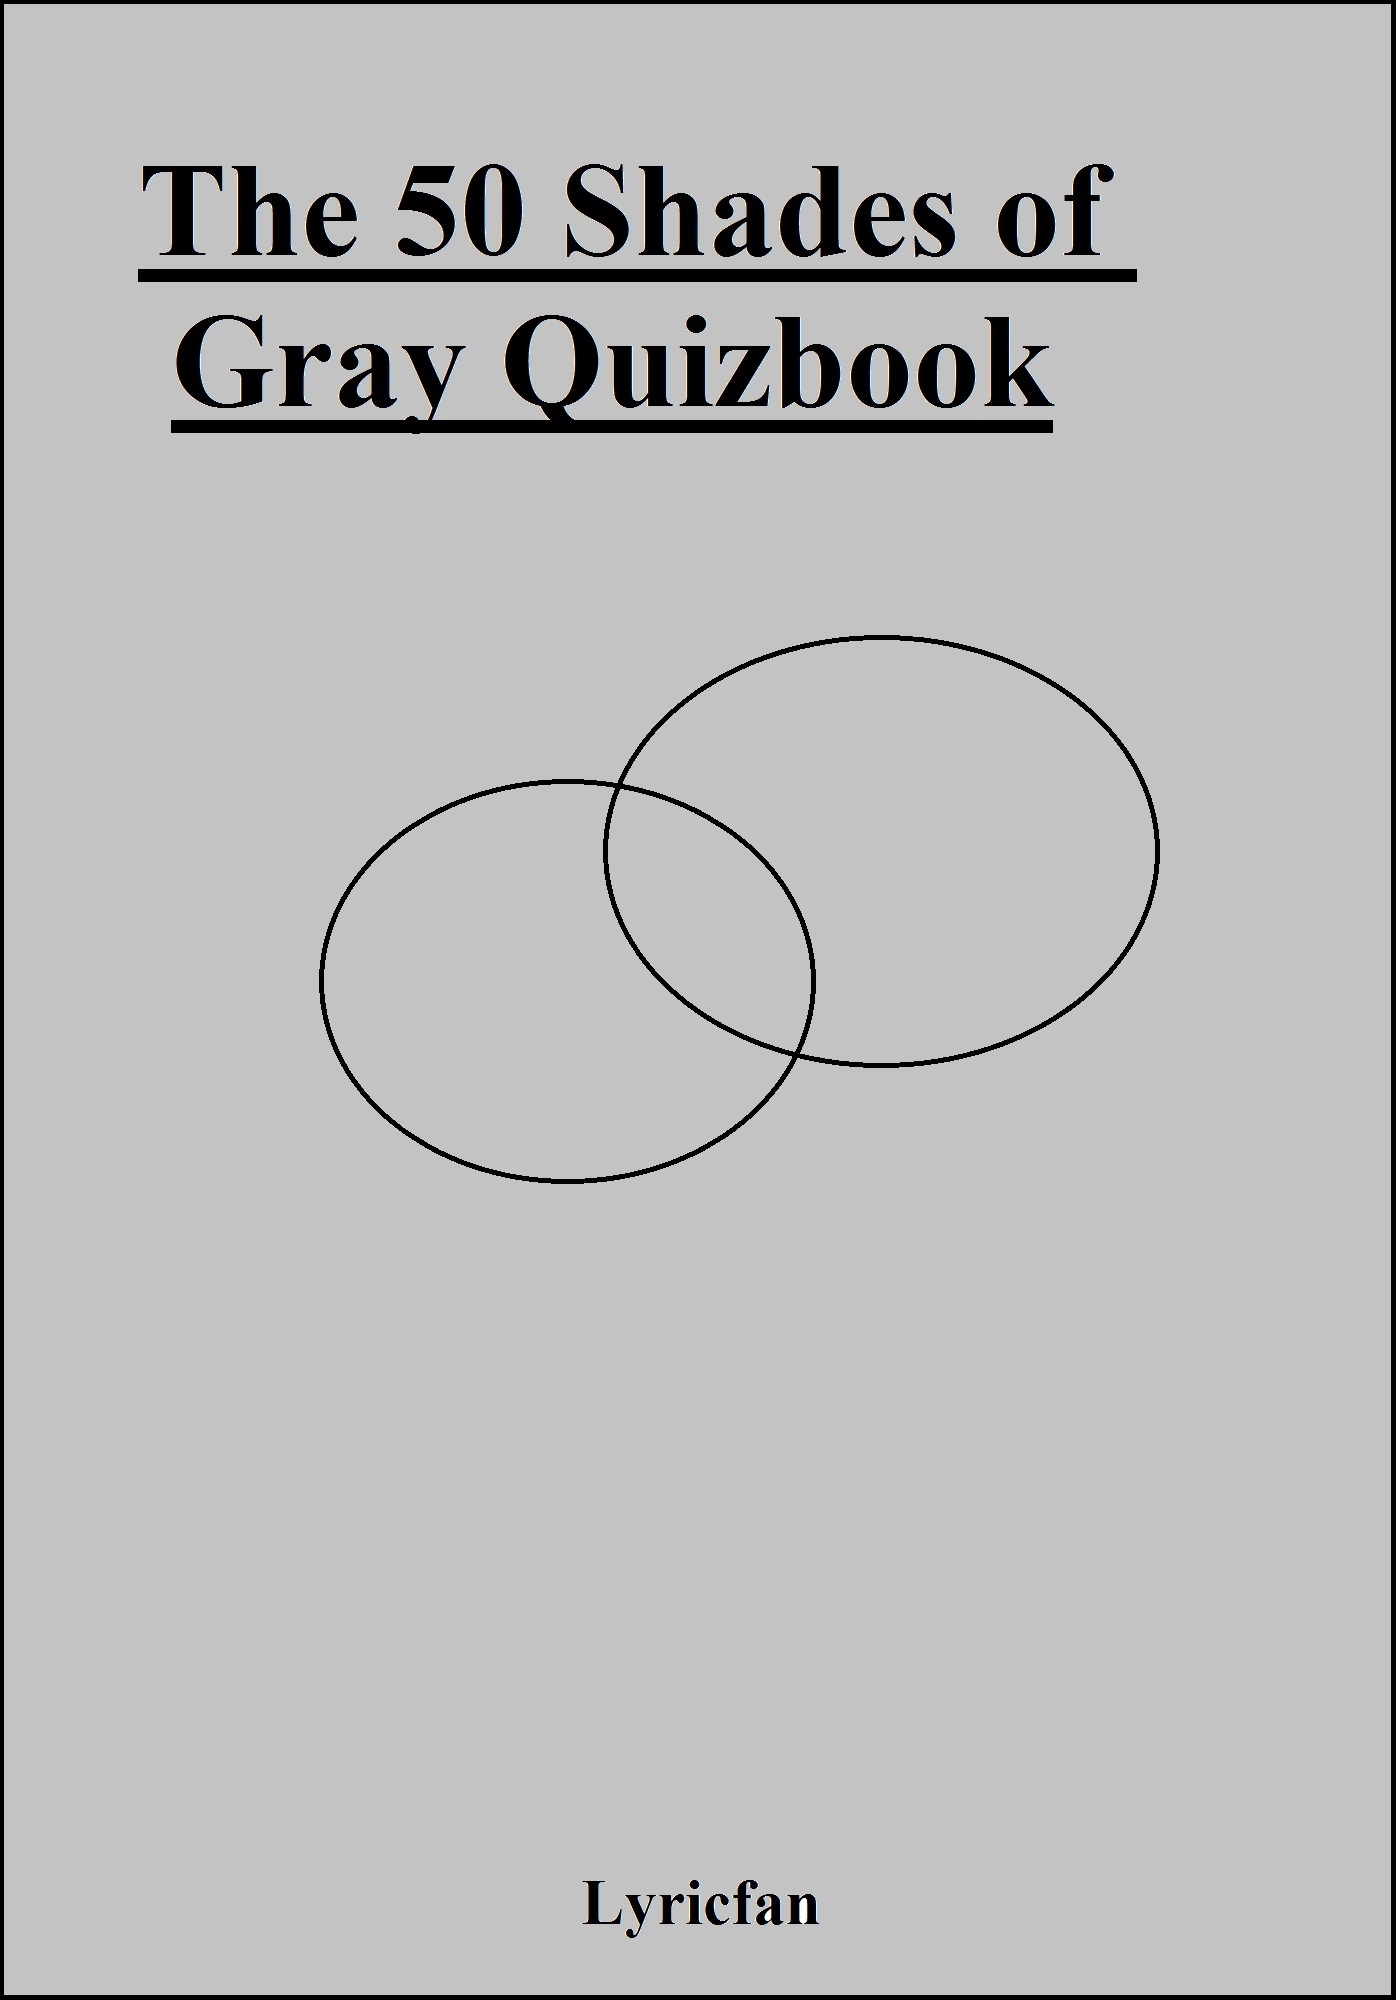 The 50 Shades of Gray Quizbook